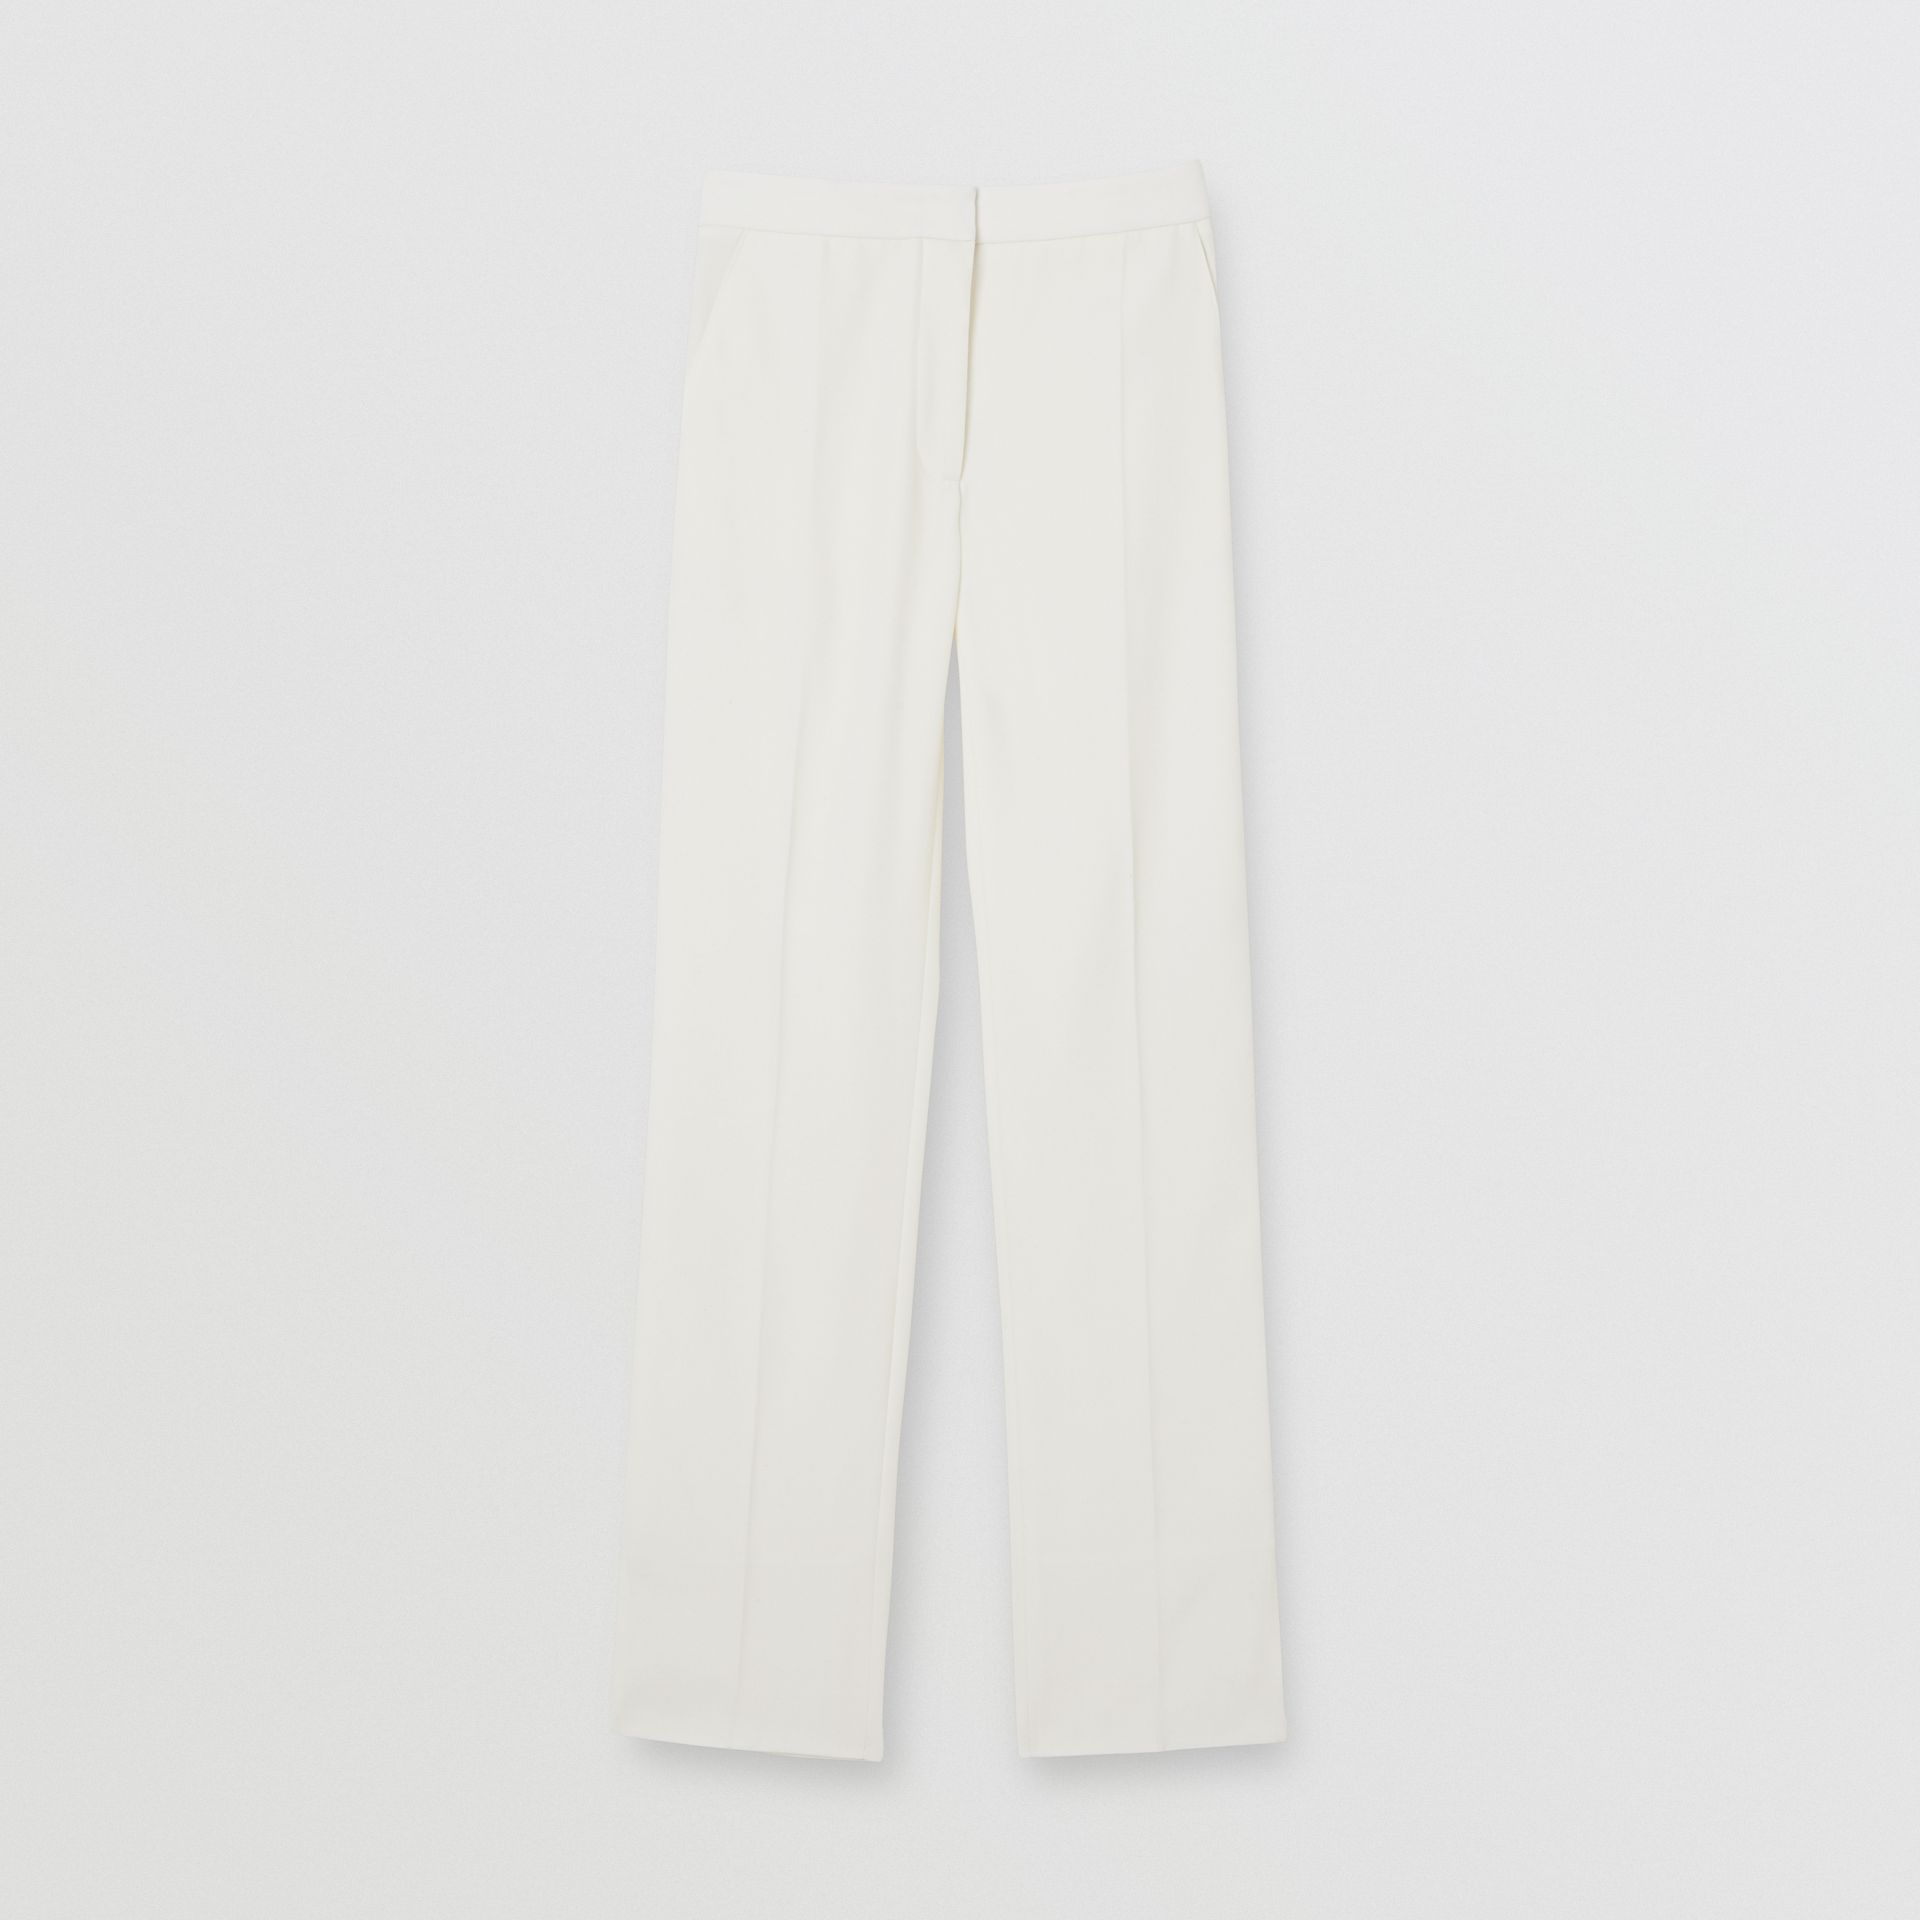 Satin Stripe Detail Wool Tailored Trousers in Natural White - Women | Burberry United Kingdom - gallery image 3